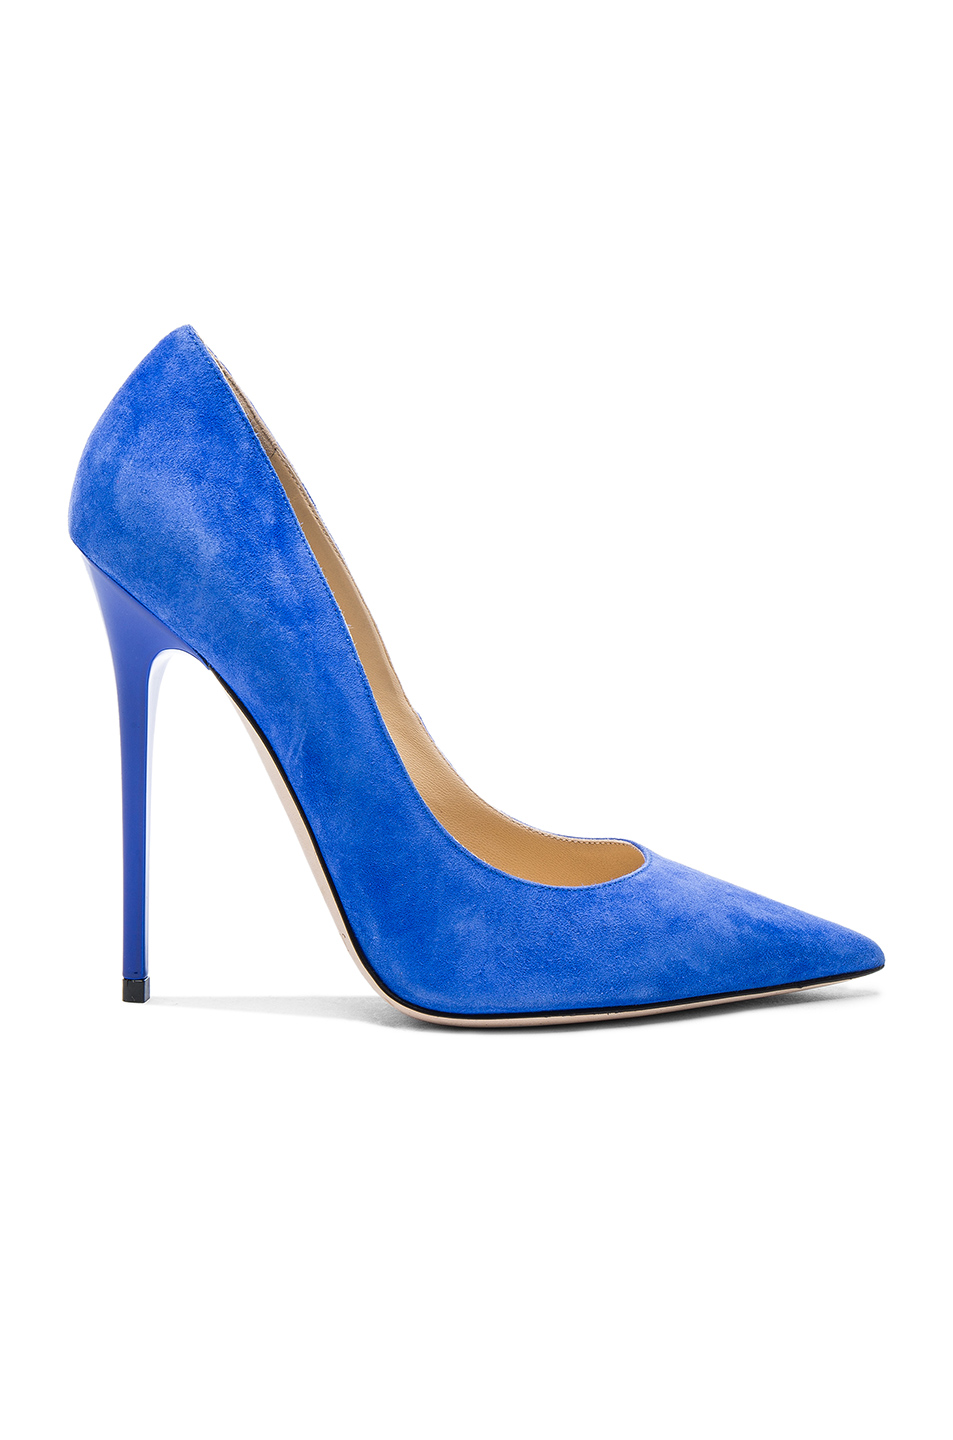 JIMMY CHOO Suede Anouk Pumps